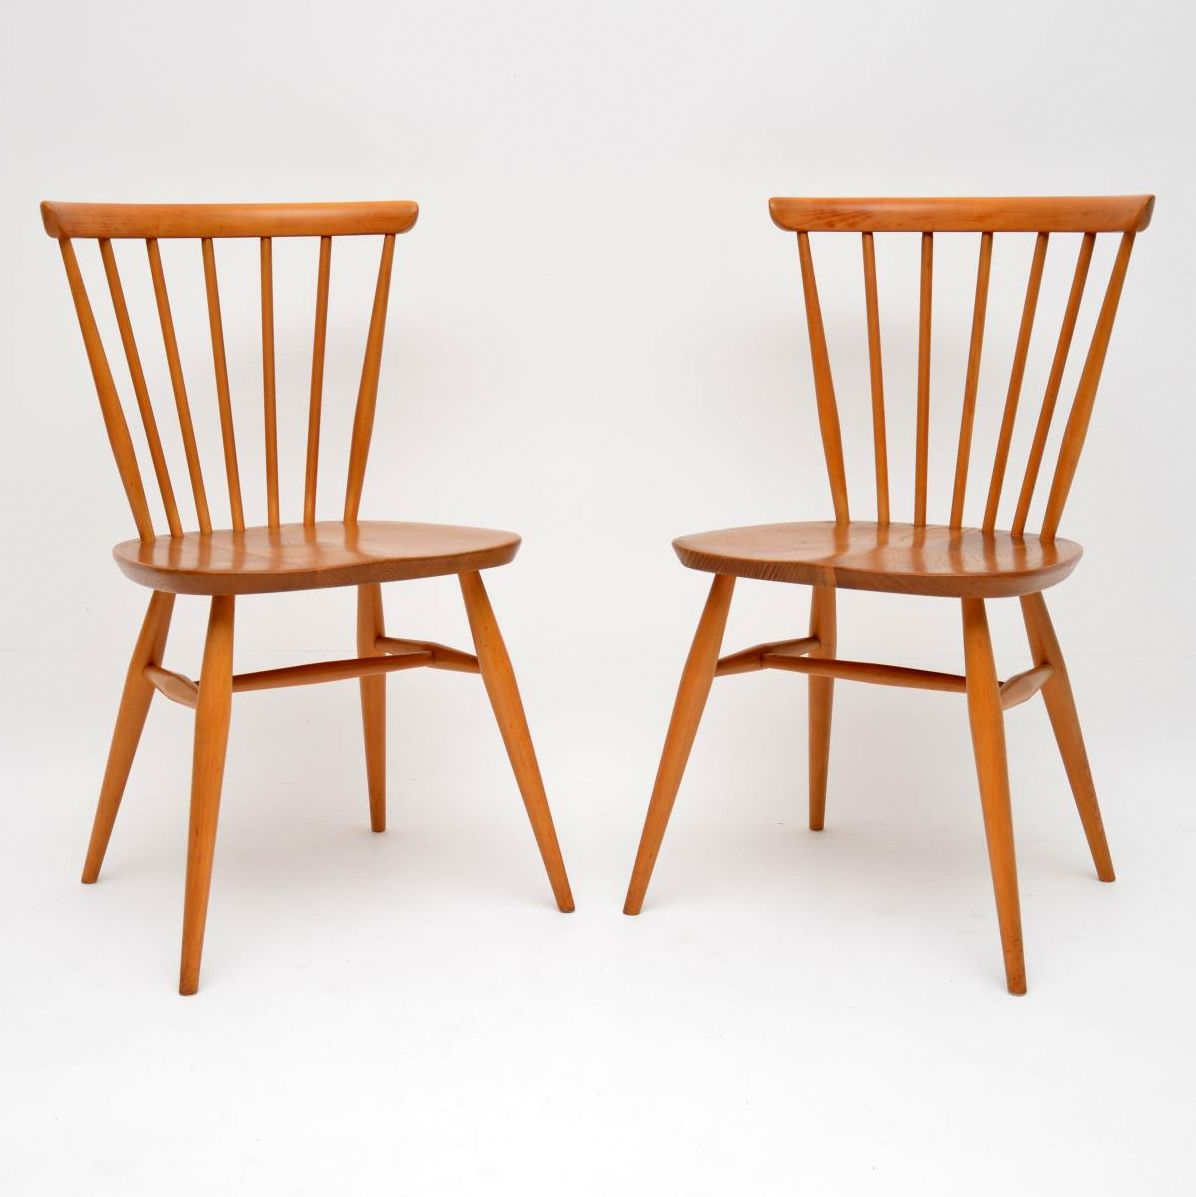 from Ryker dating ercol furniture